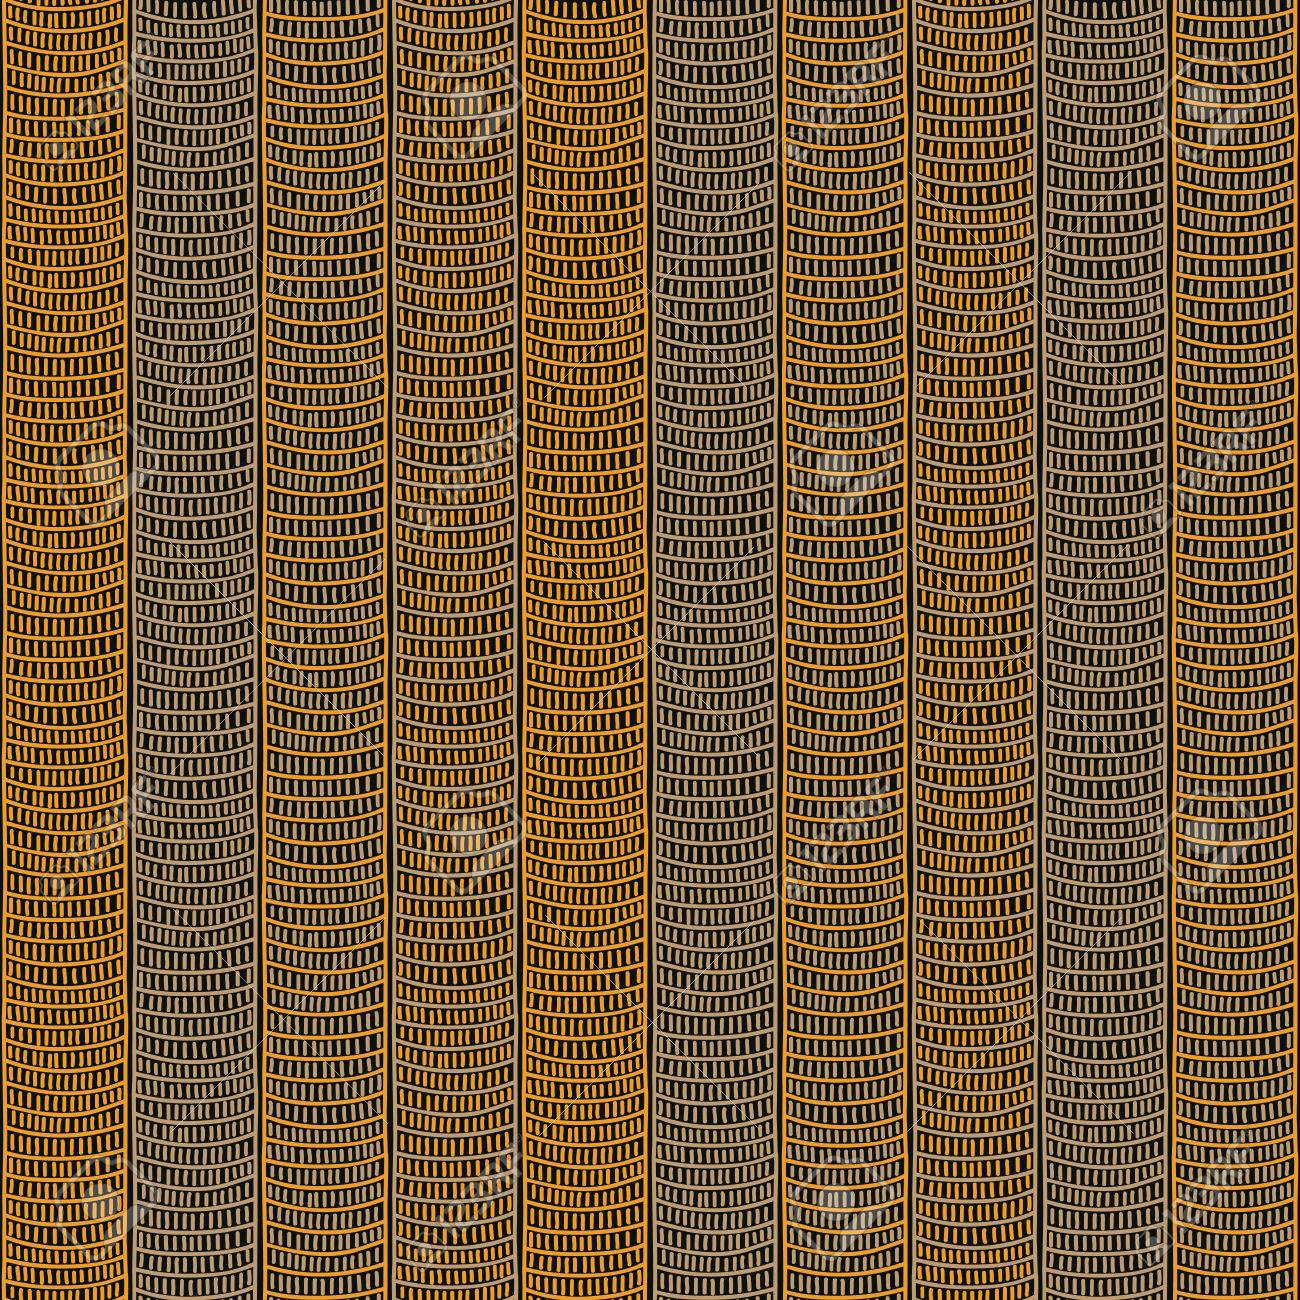 Traditional African Ornamental Pattern Stylized Seamless Texture With Waves Dark Orange For